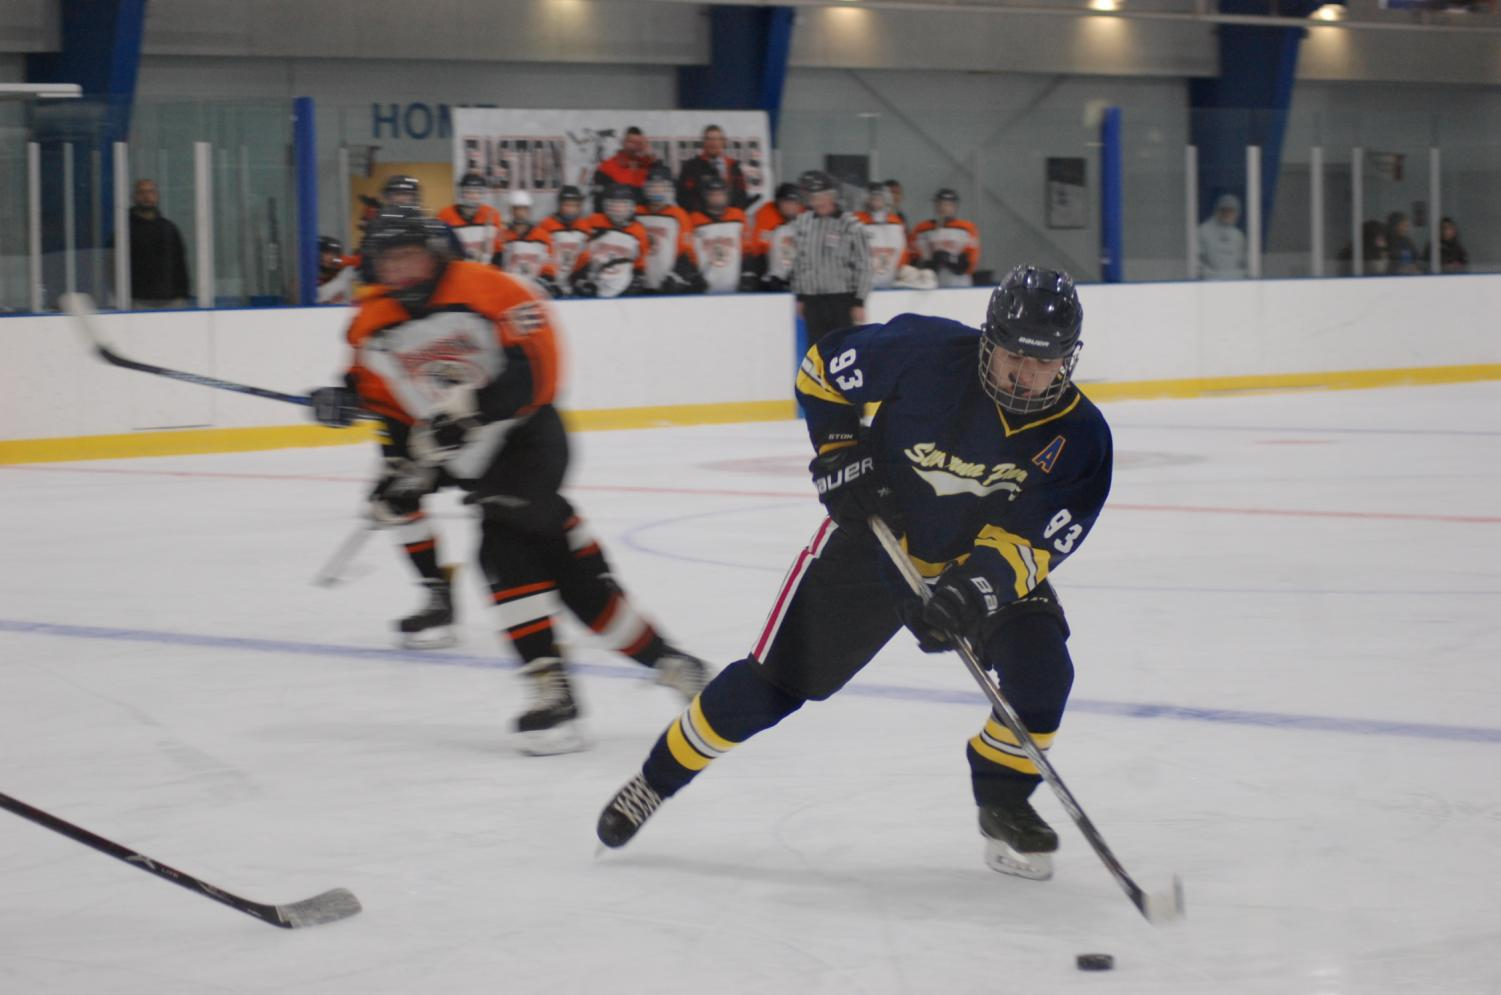 """The ice hockey team practices twice a week at the Naval Academy ice rink. Last year, they lost in the first round of playoffs against South River . """"It's kind of an unknown sport, it's not really advertised through the school,"""" junior Connor McGrath said."""